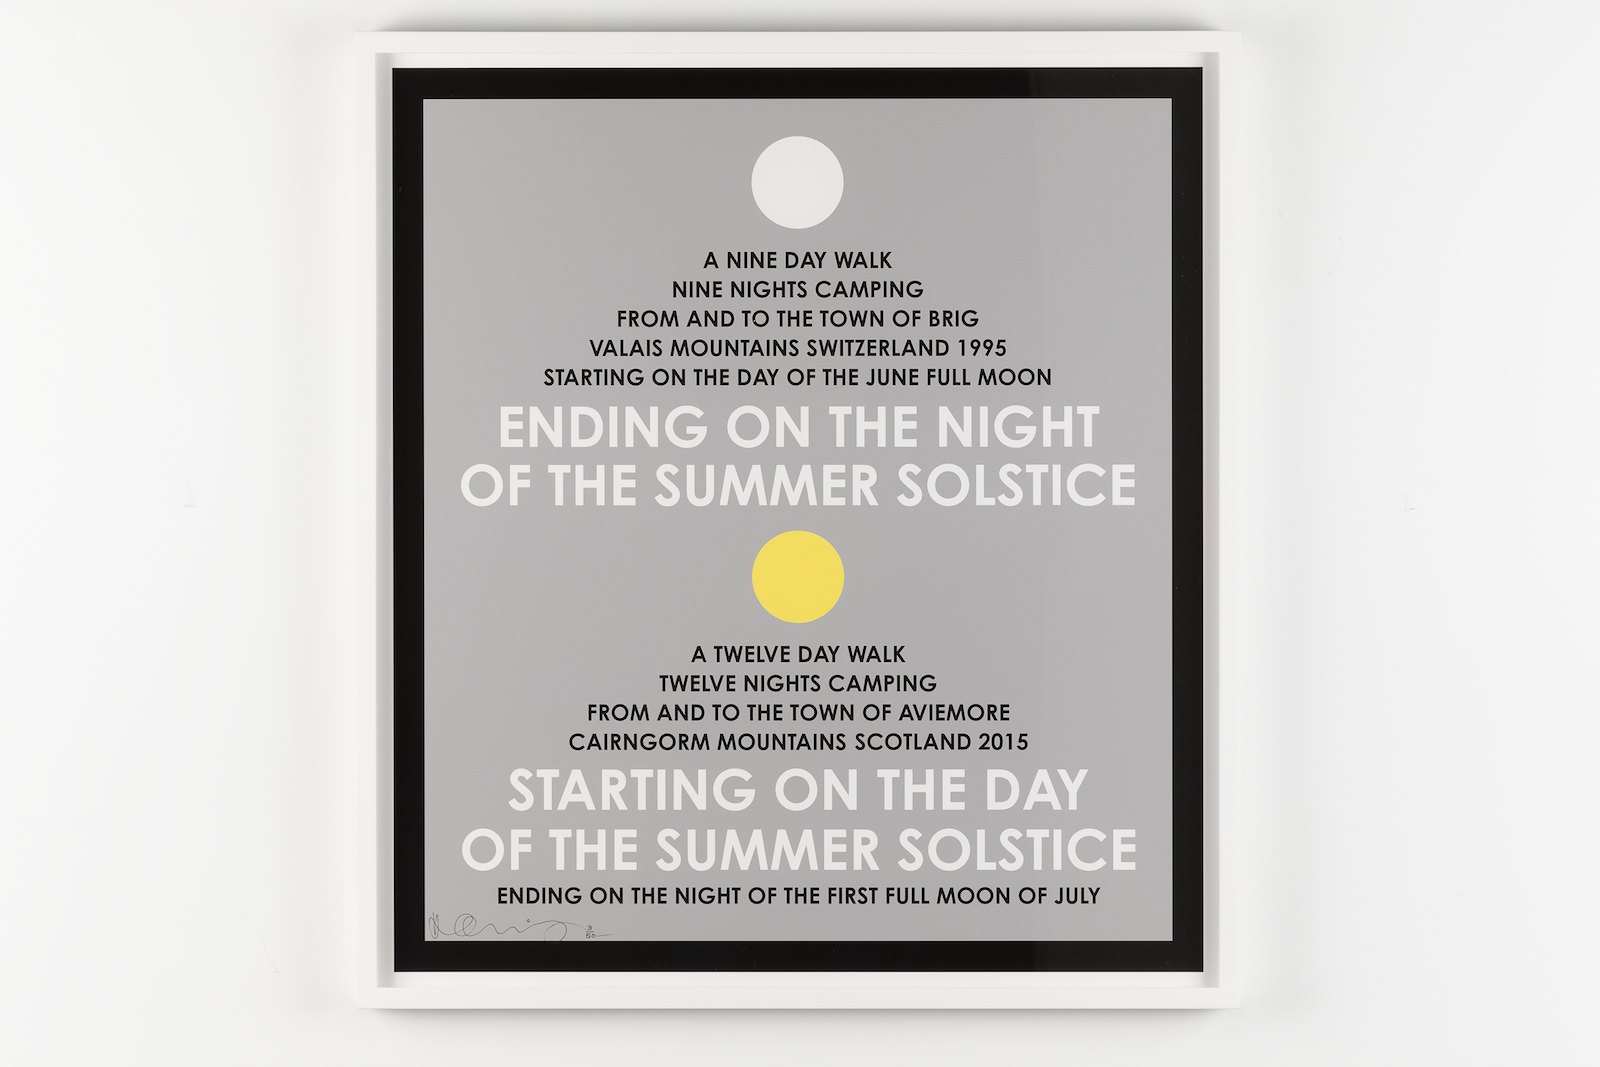 Summer Solstice, Switzerland 1995 and Scotland 2015. Archival inkjet print, 70 x 63 cm, Ed. 3/50